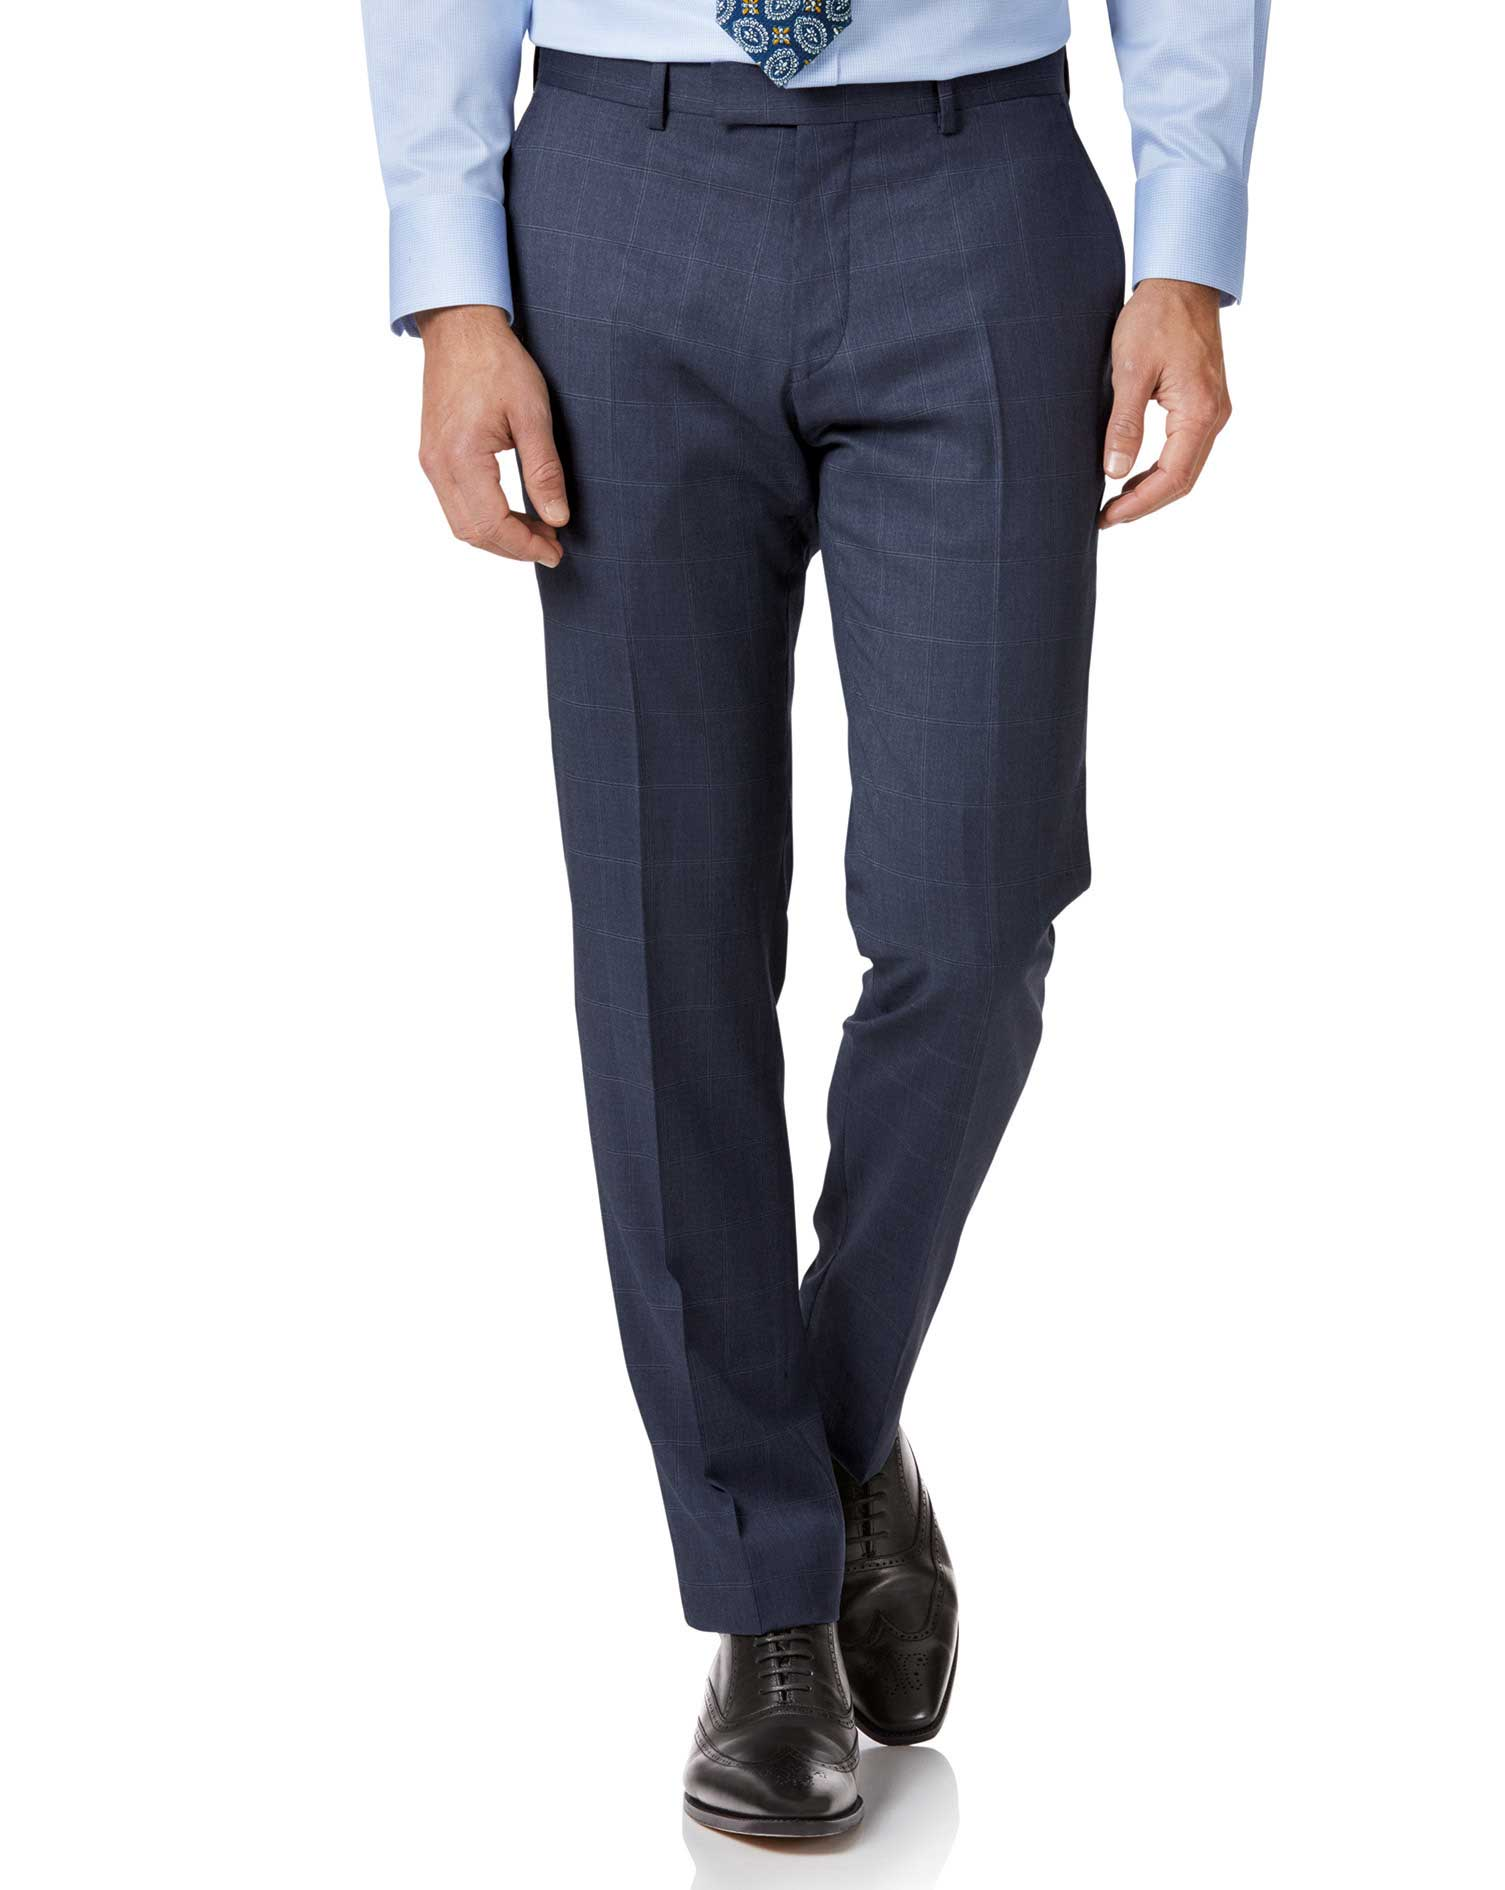 Image of Charles Tyrwhitt Airforce Blue Slim Fit Italian Suit Trousers Size W76 L81 by Charles Tyrwhitt